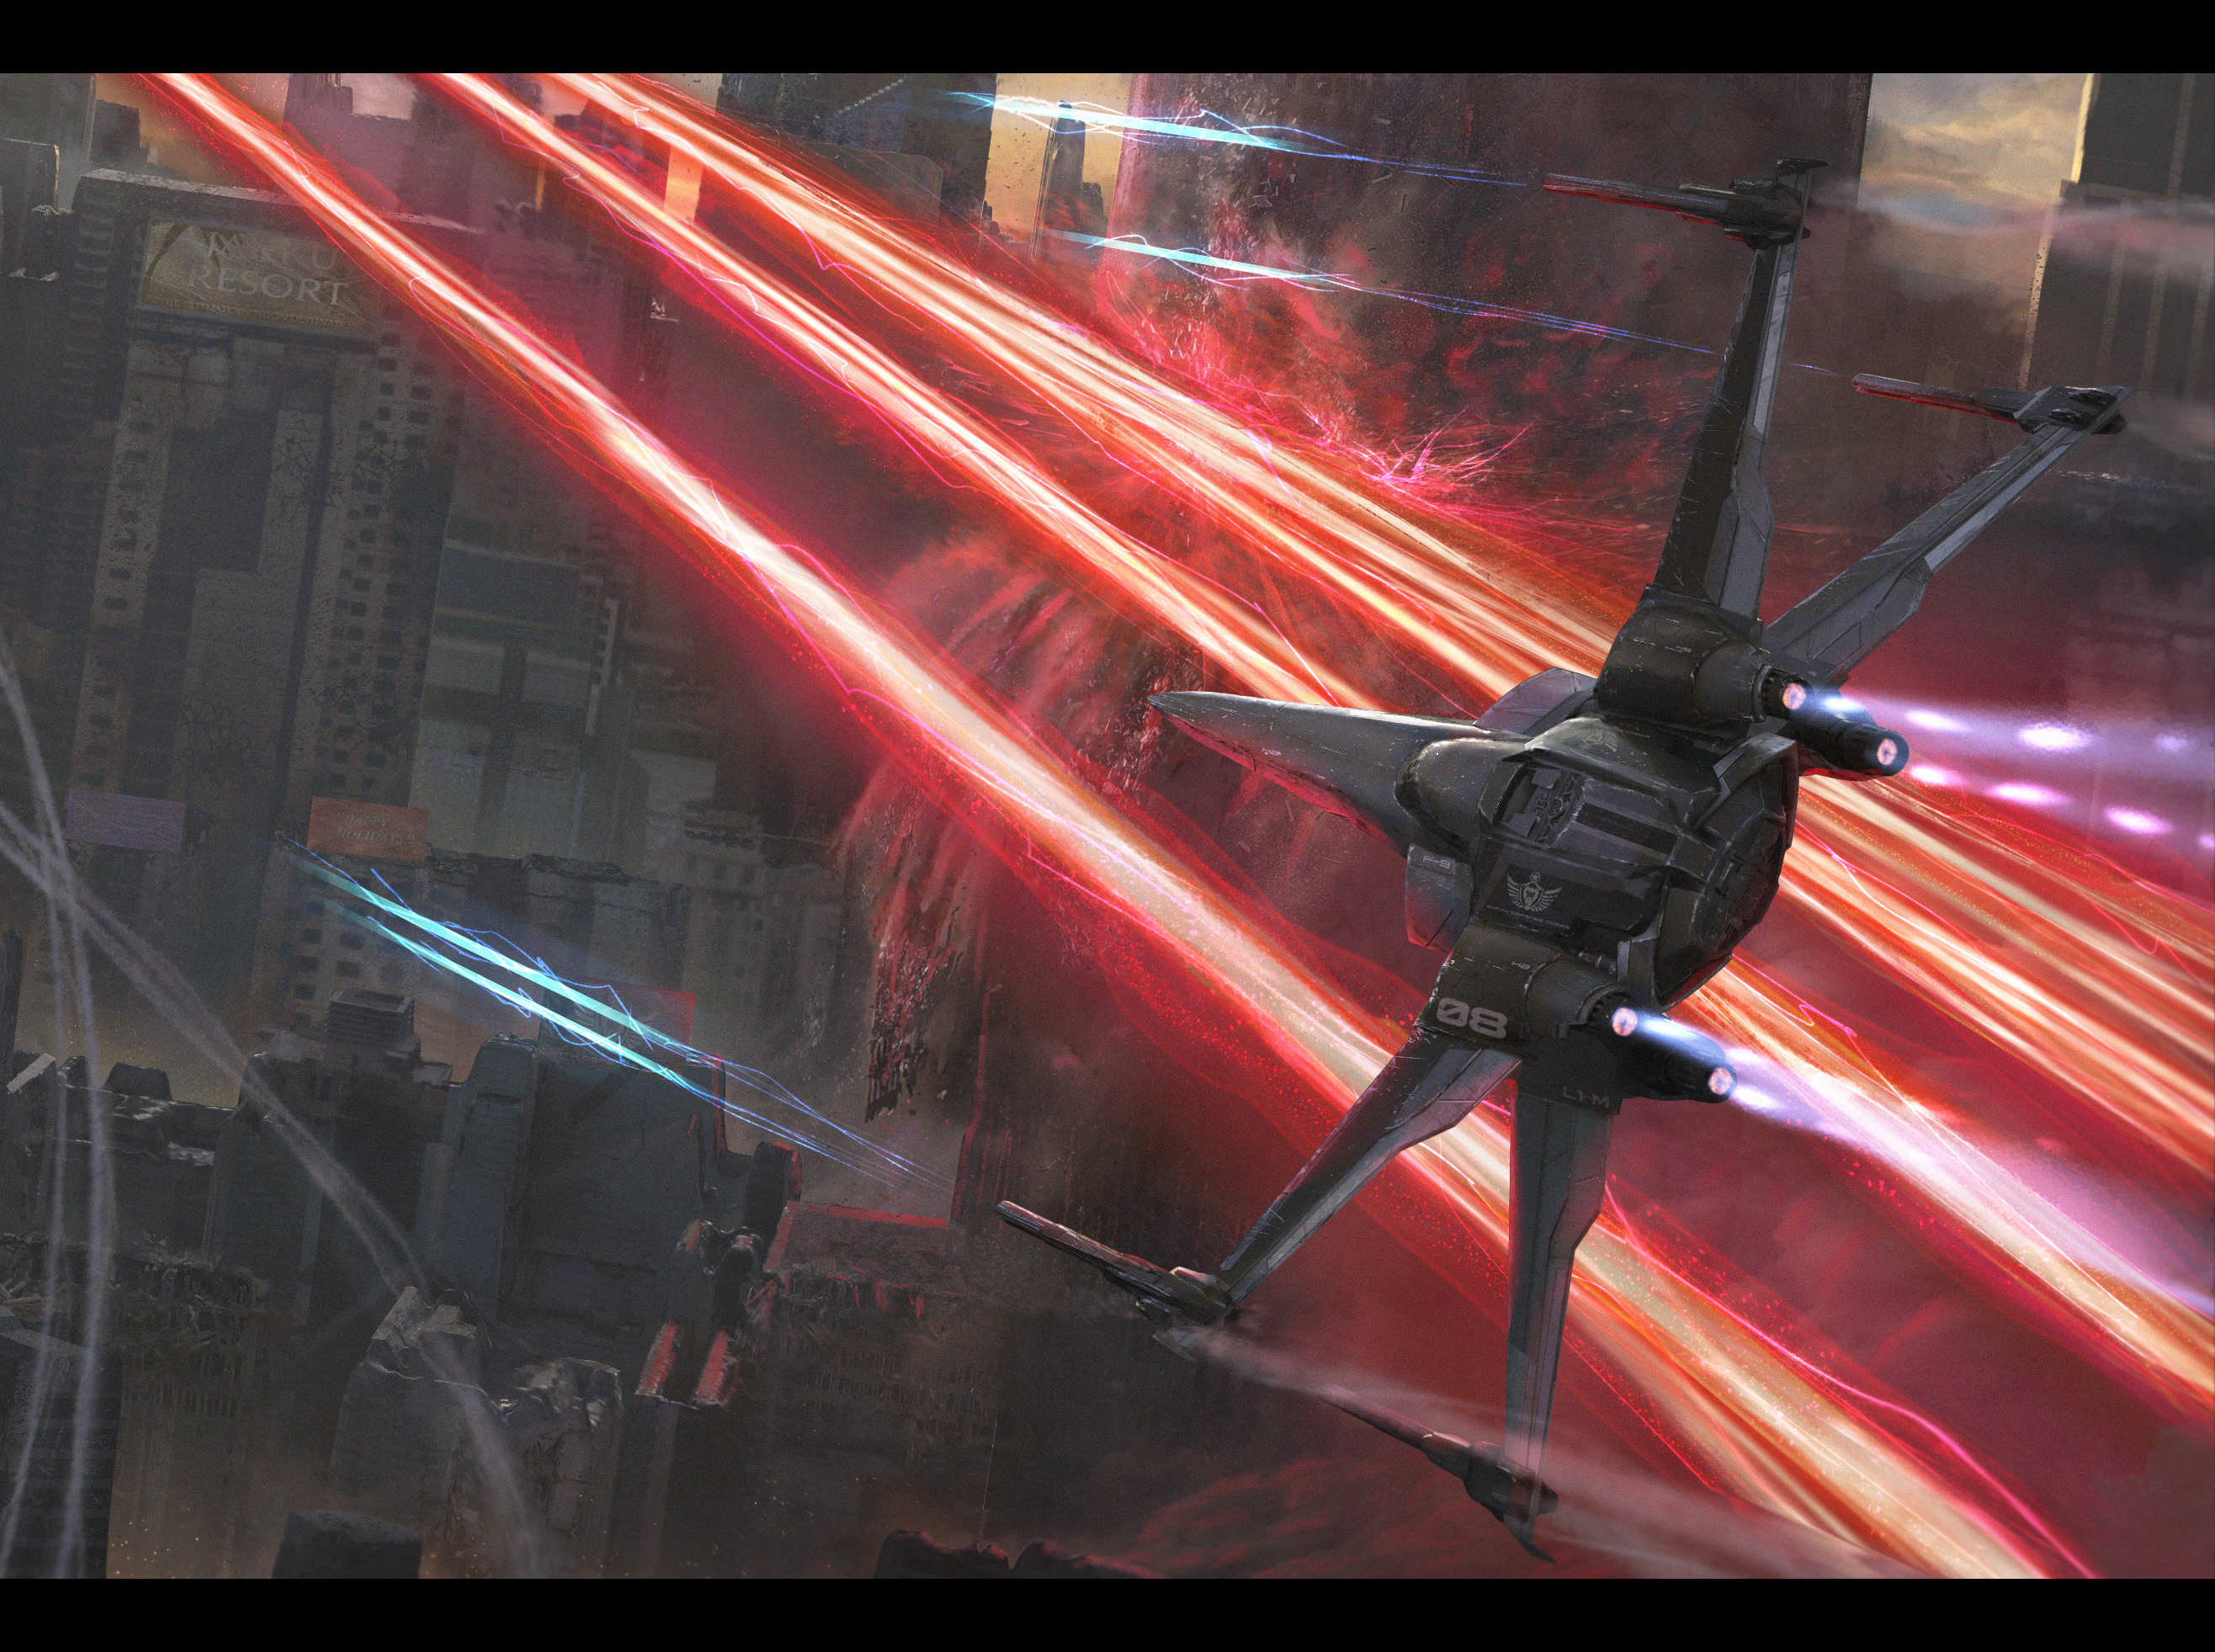 x_wing_close_up_by_andrew_lim-d9q5vfu.jp